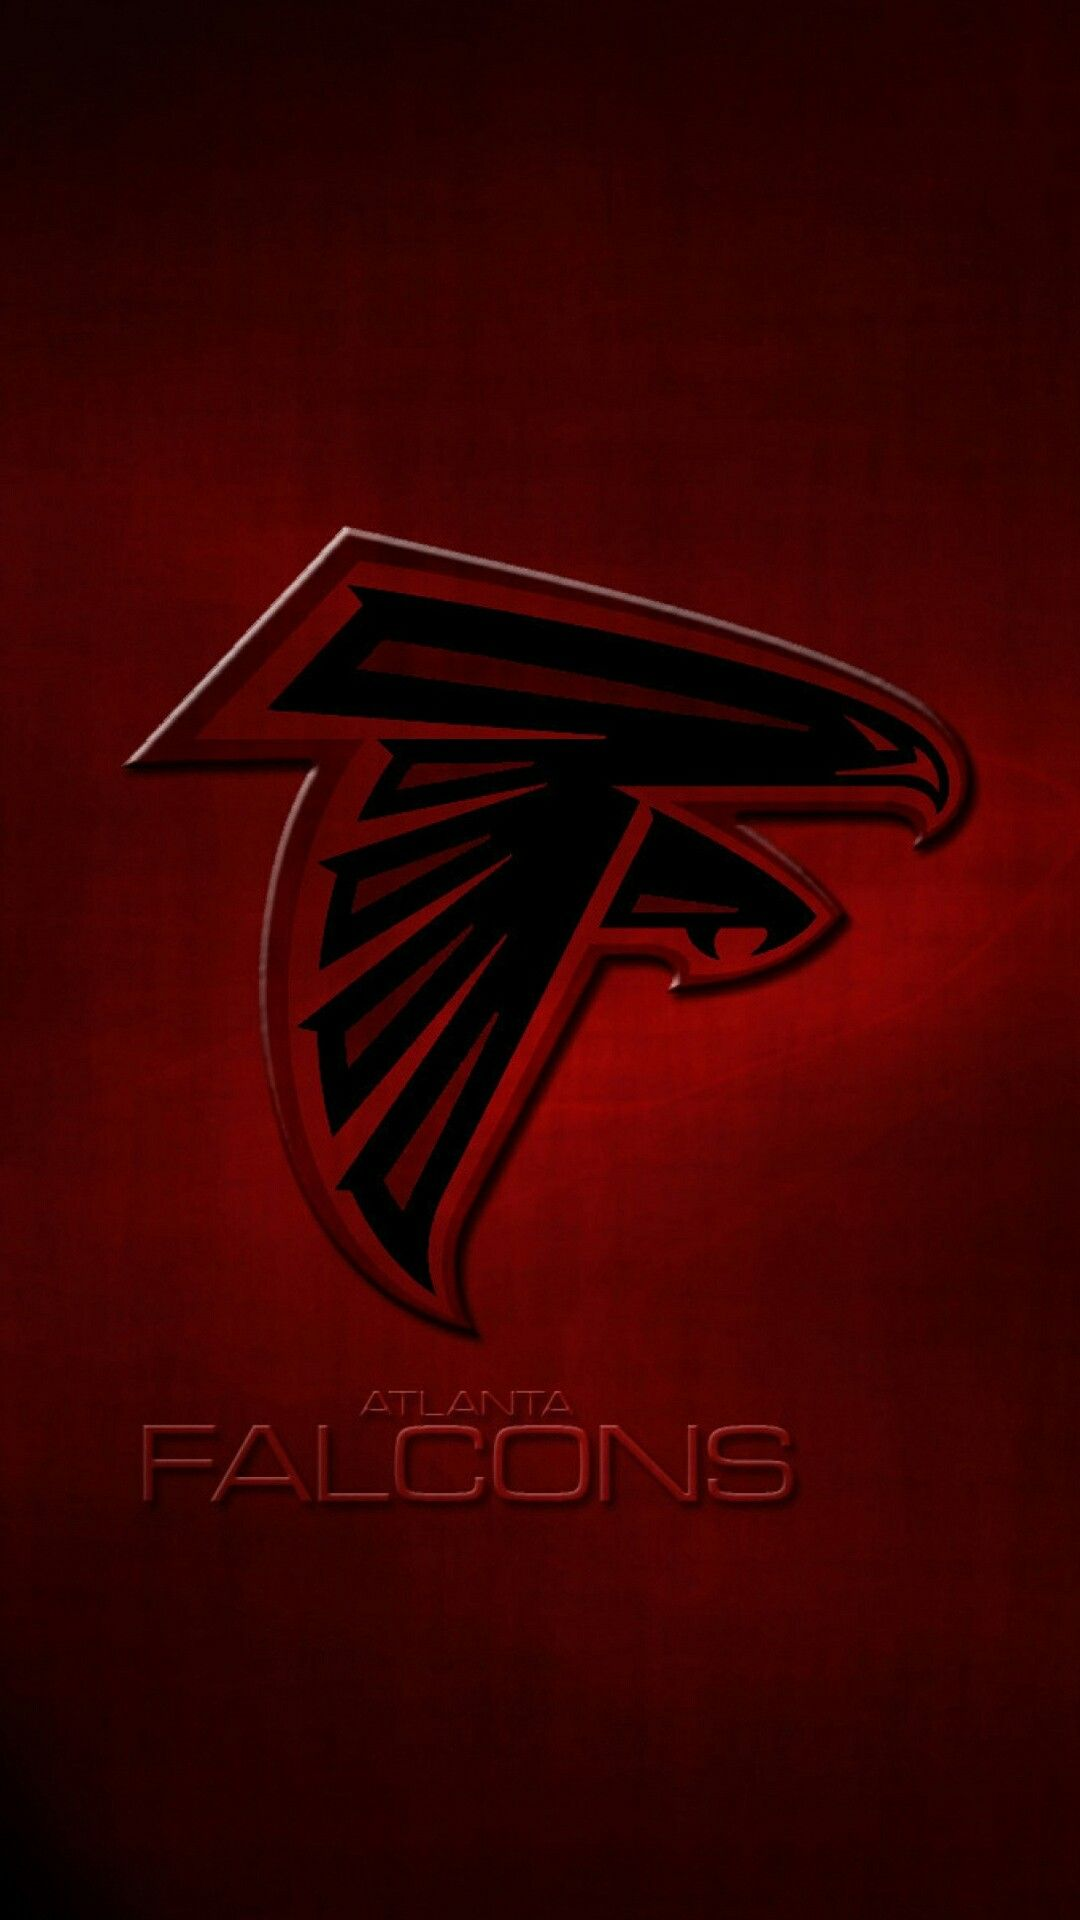 Atlanta Falcons Atlanta Falcons Football Atlanta Falcons Logo Atlanta Falcons